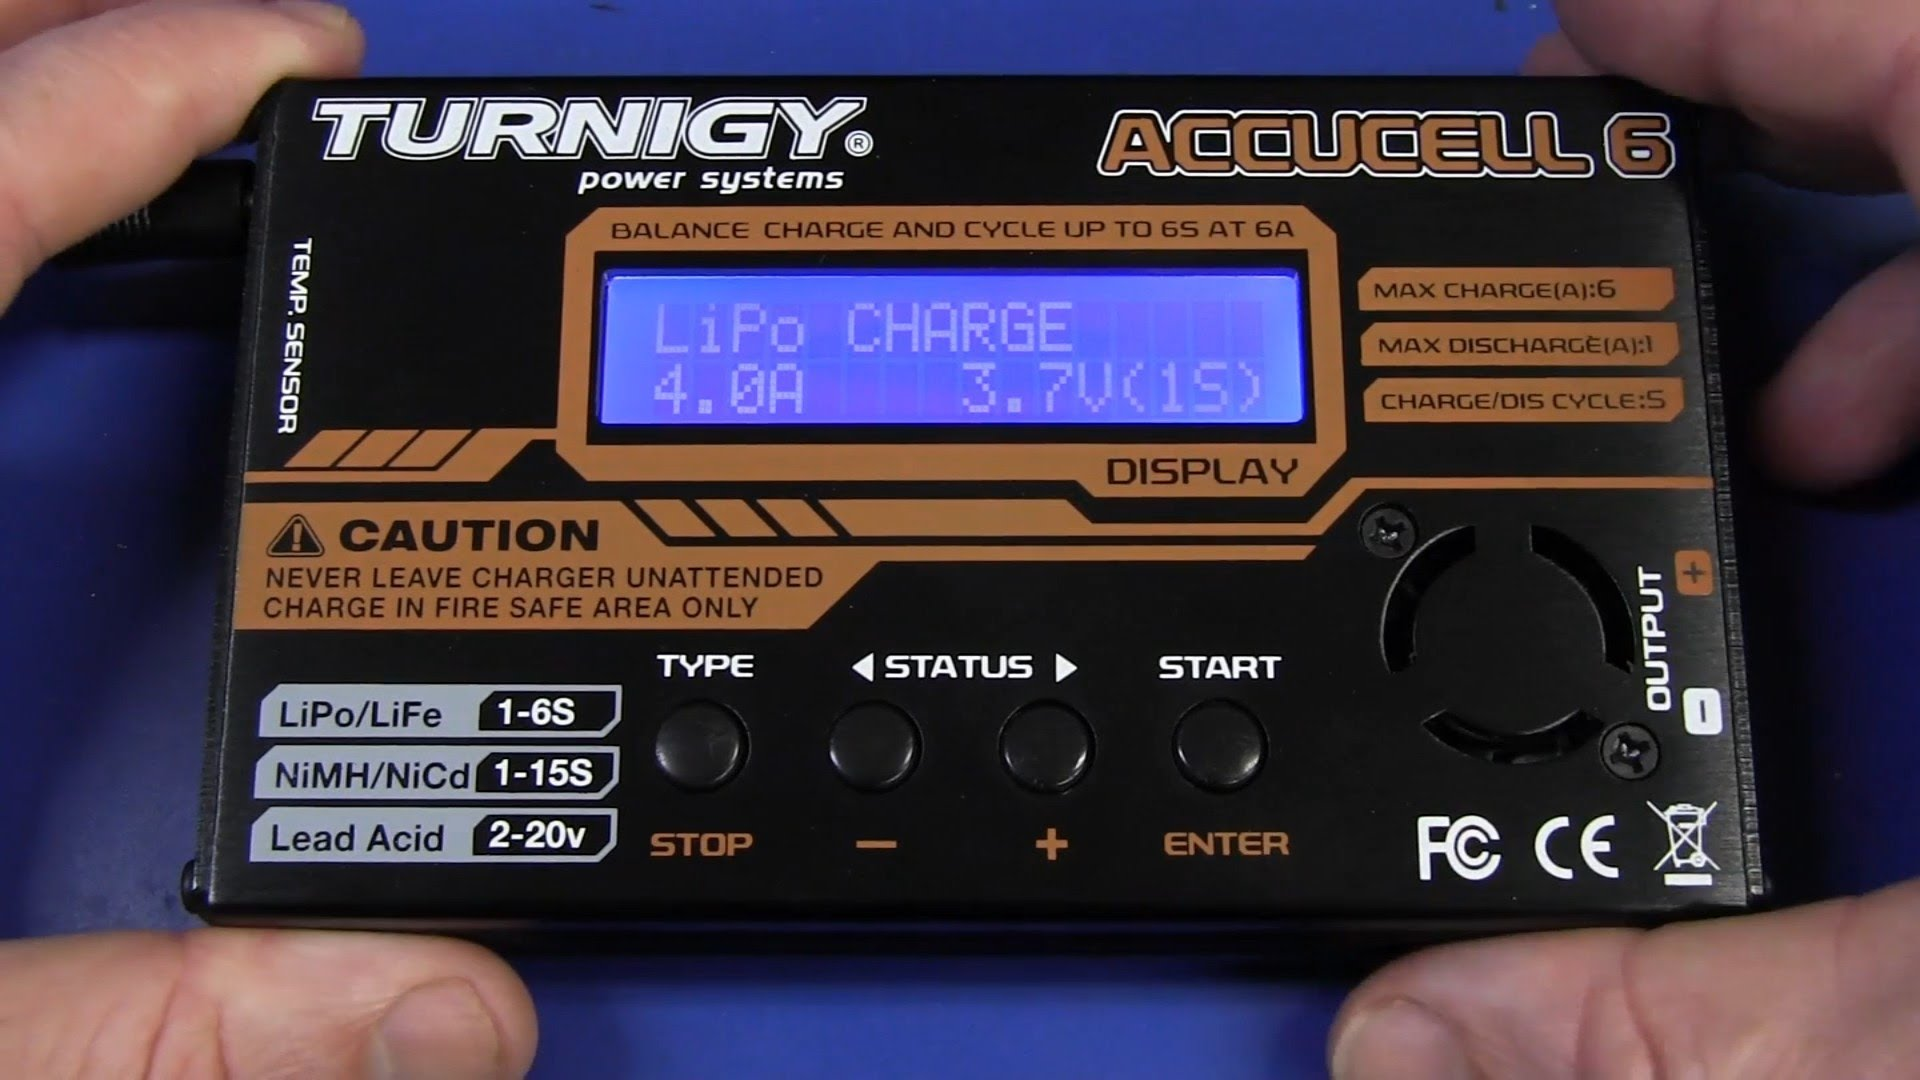 EEVblog #397 – Turnigy Accucell 6 Charger Teardown